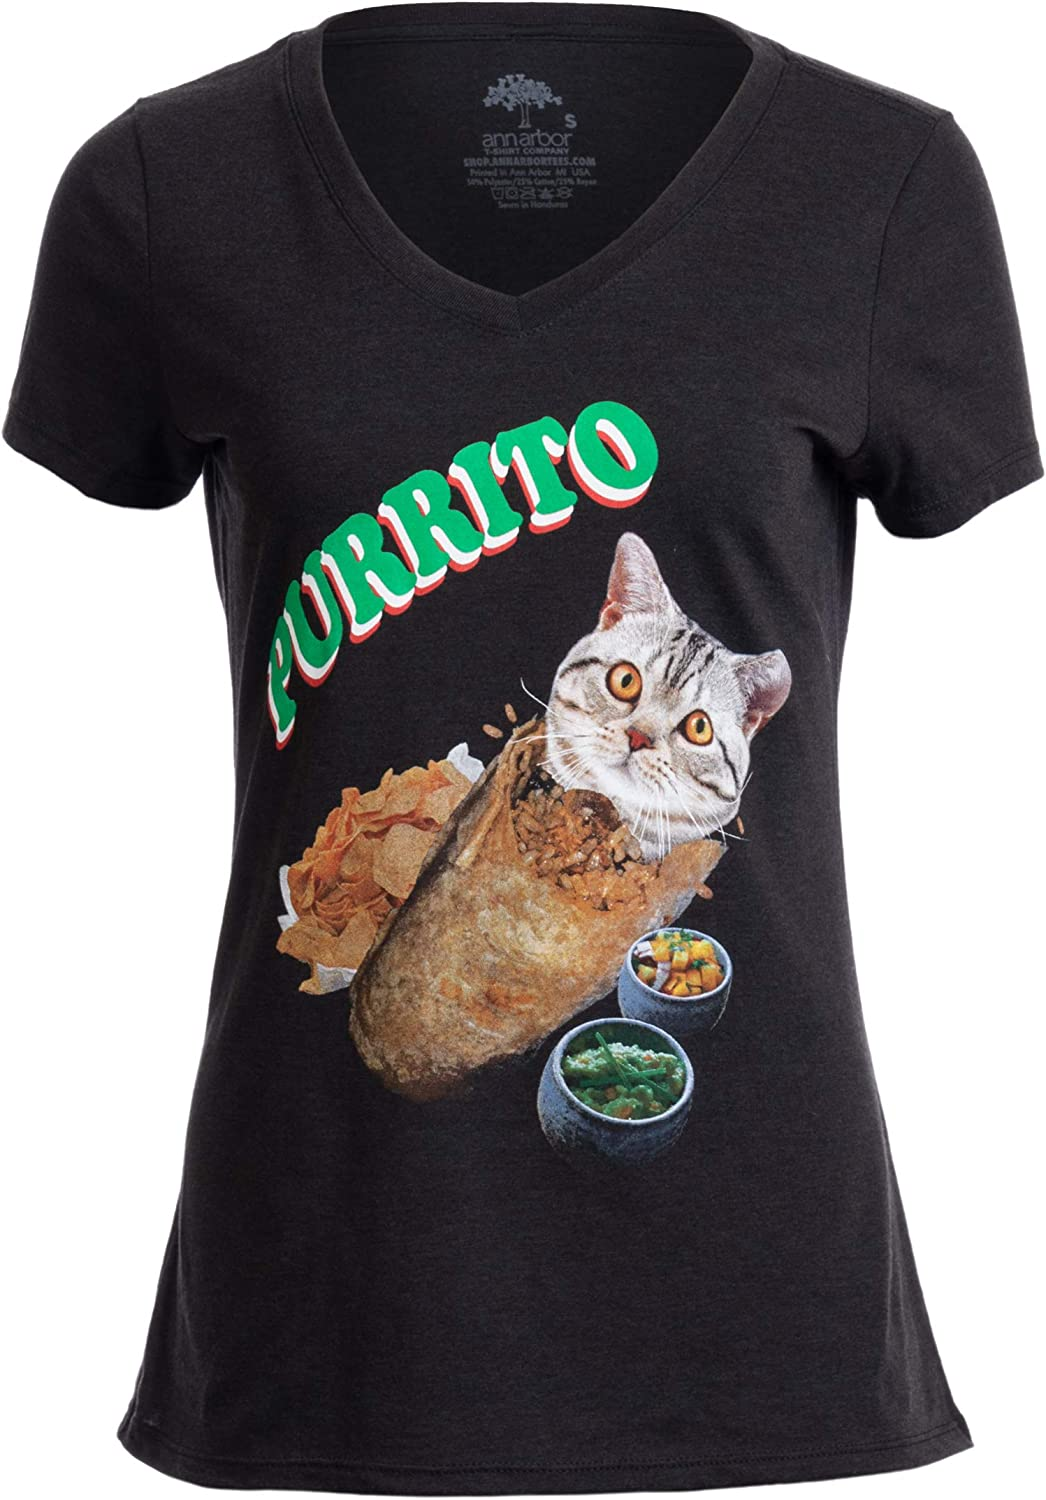 Purrito | Burrito Cat Funny Mexican Food Kitty Salsa Guac Kitten Women T-Shirt